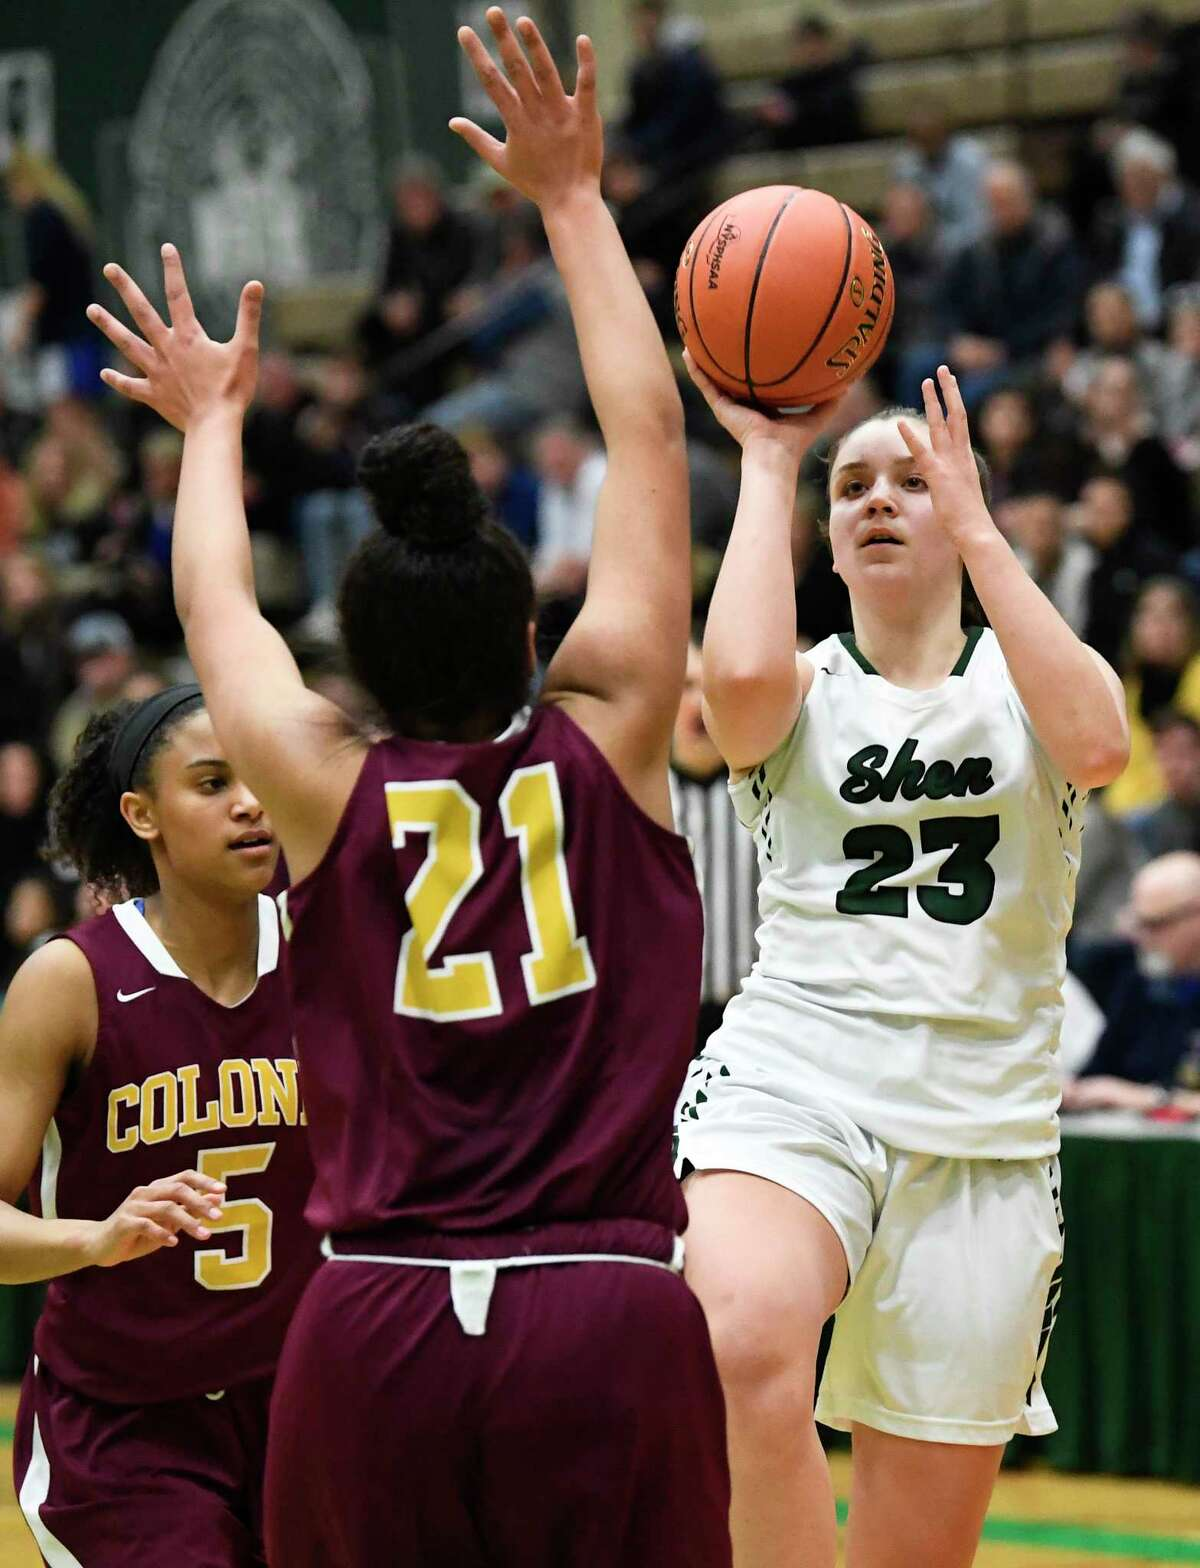 Shenendehowa's Meghan Huerter (23) scores against Colonie's Sareena Dicerbo (21) during a Section II Class AA Girls' semifinal high school basketball game Thursday, Feb. 28, 2019, in Troy, N.Y. Shenendehowa won 62-50. (Hans Pennink / Special to the Times Union)